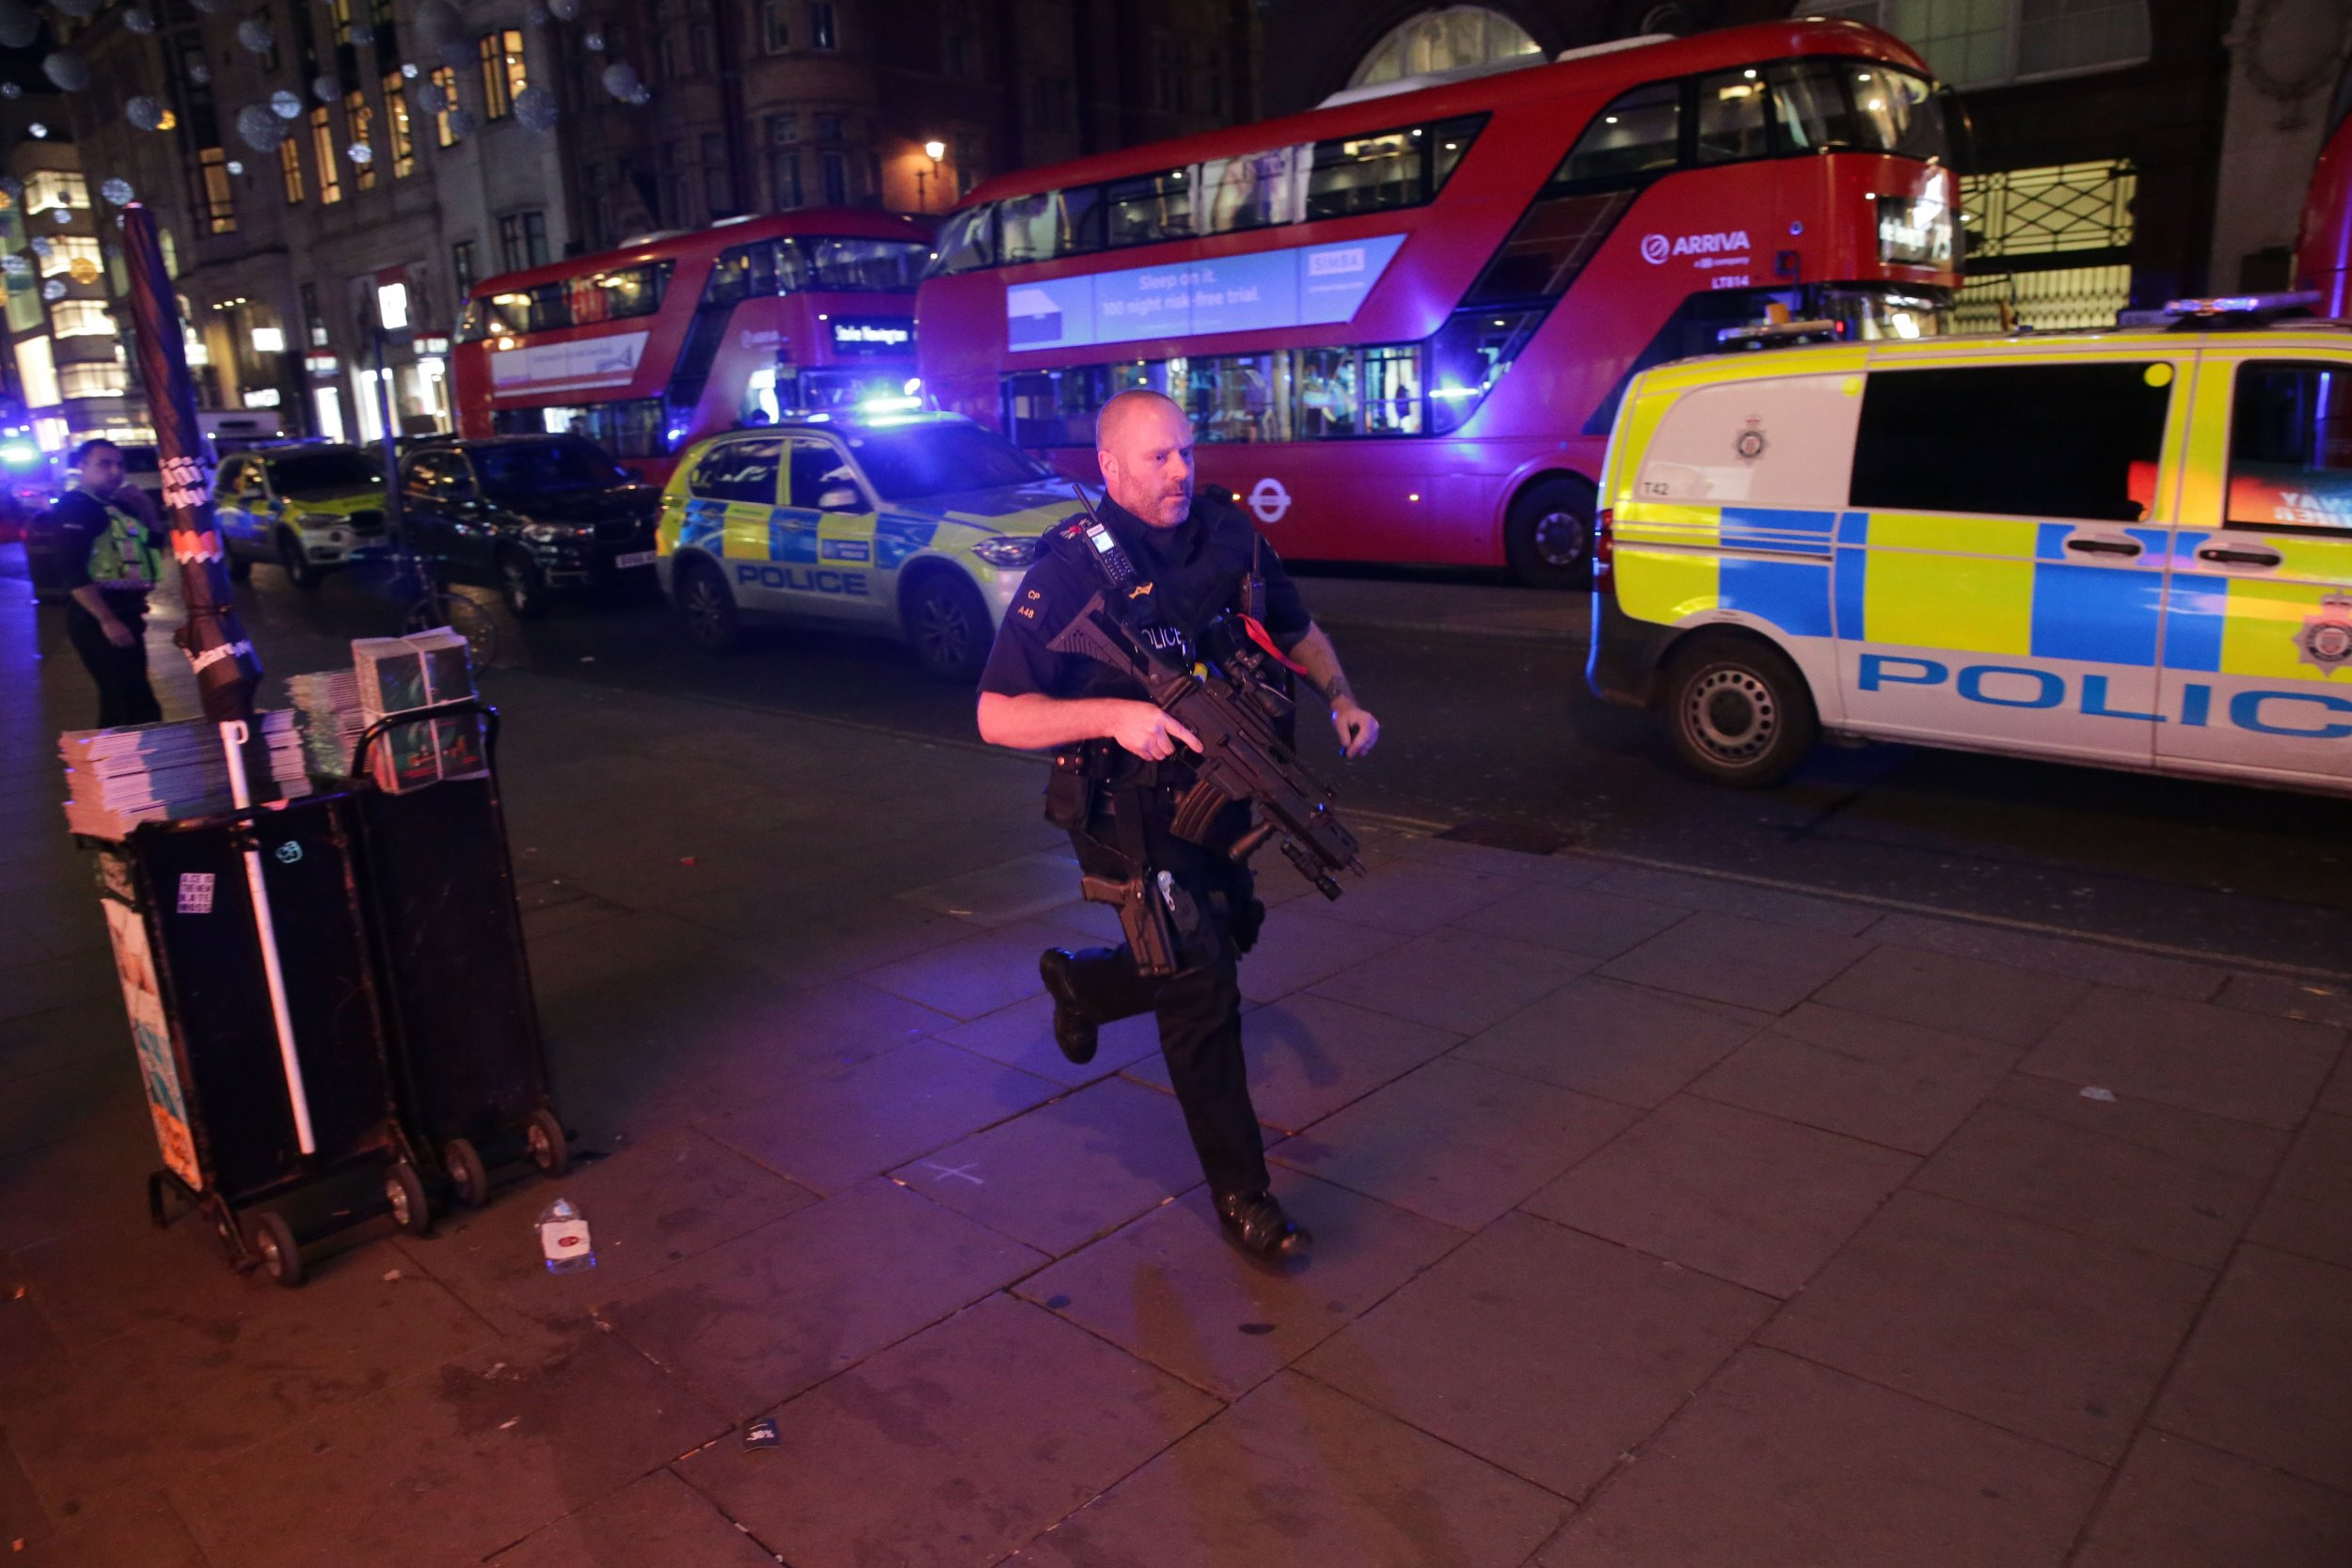 London's Oxford Circus subway station evacuated with armed police on the scene